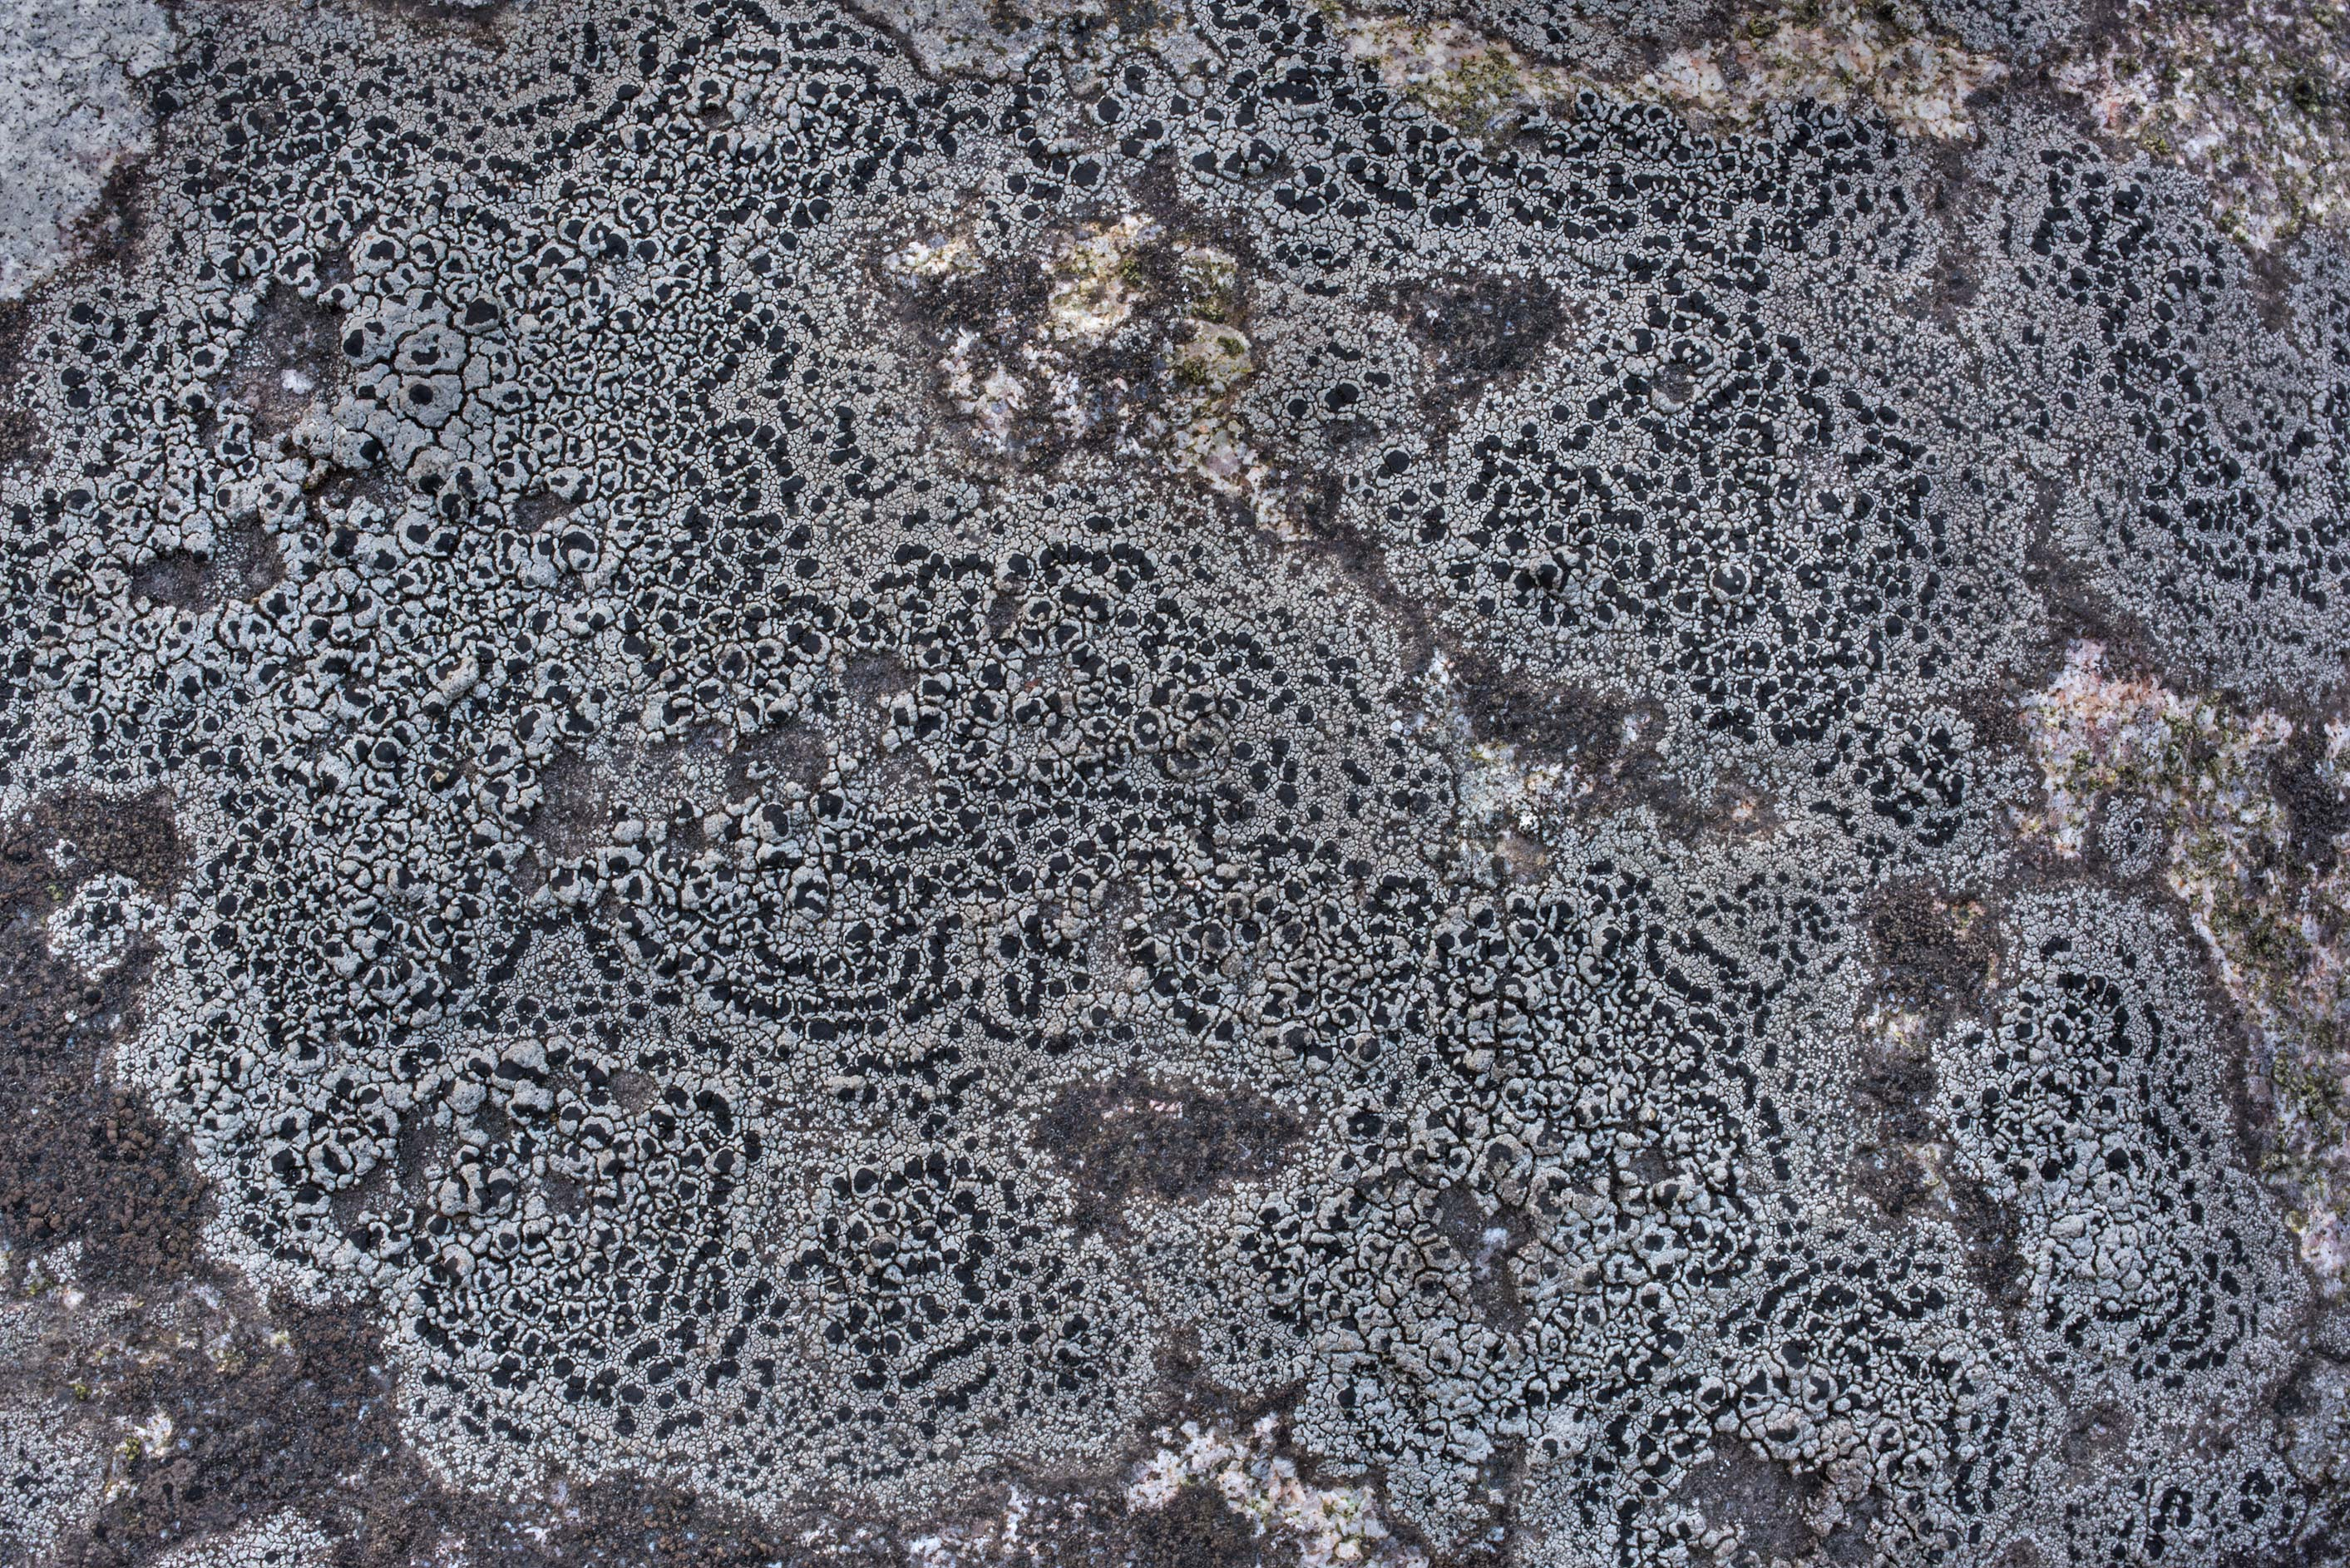 Circular patterns of map lichen Rhizocarpon...miles north from St.Petersburg. Russia